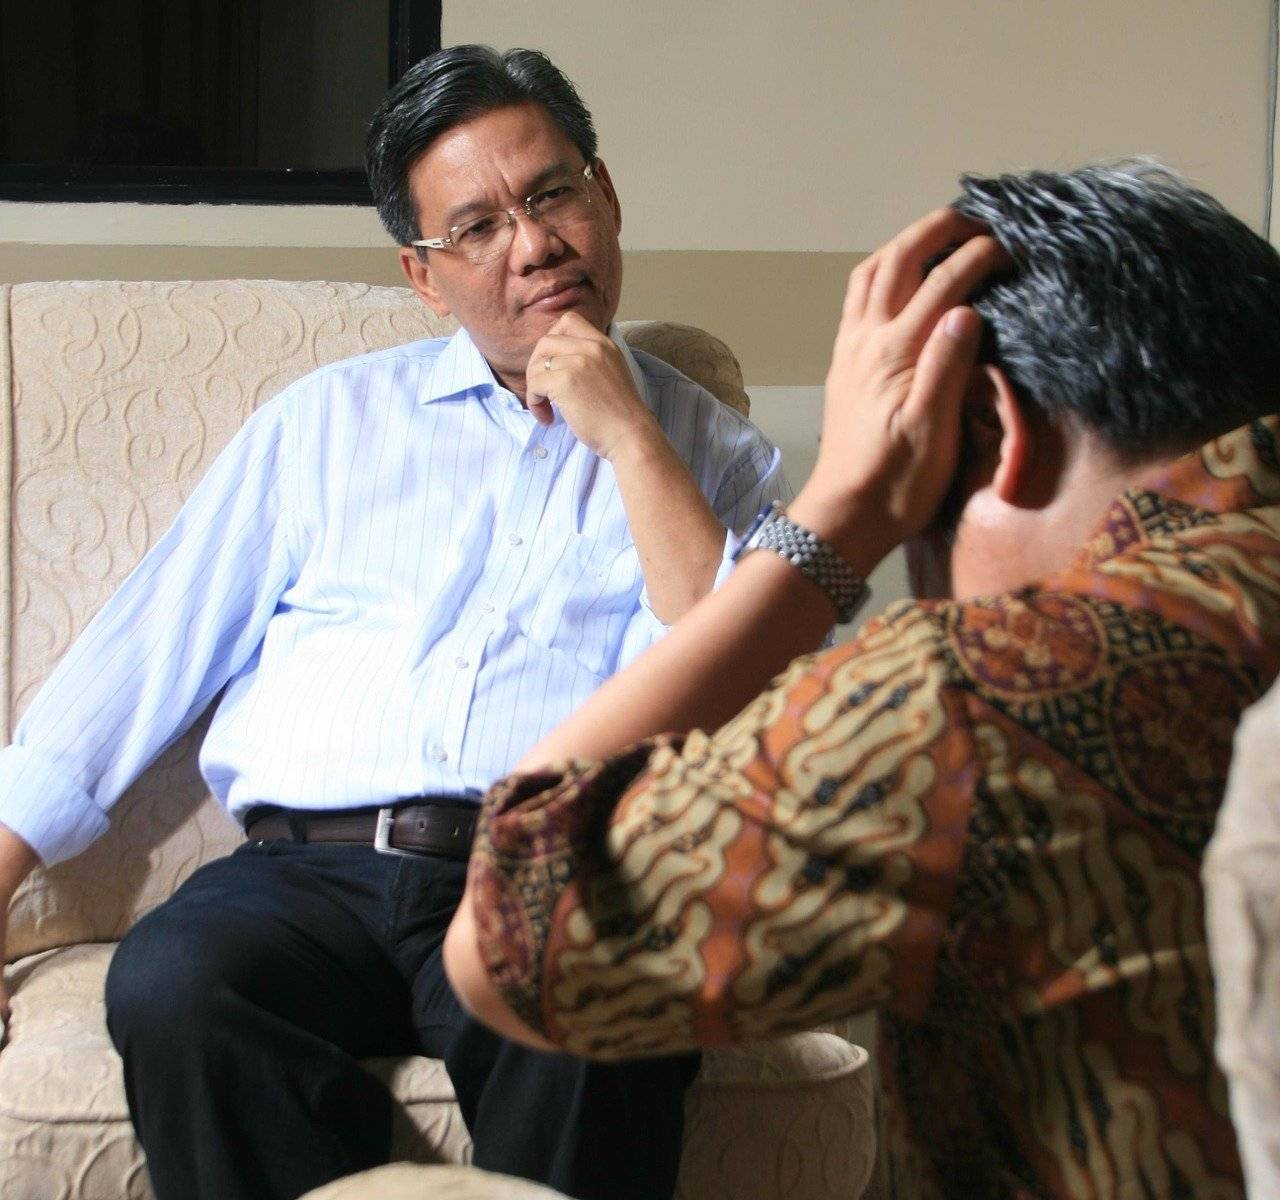 Male psychiatrist sitting on couch talking to patient with hands on head